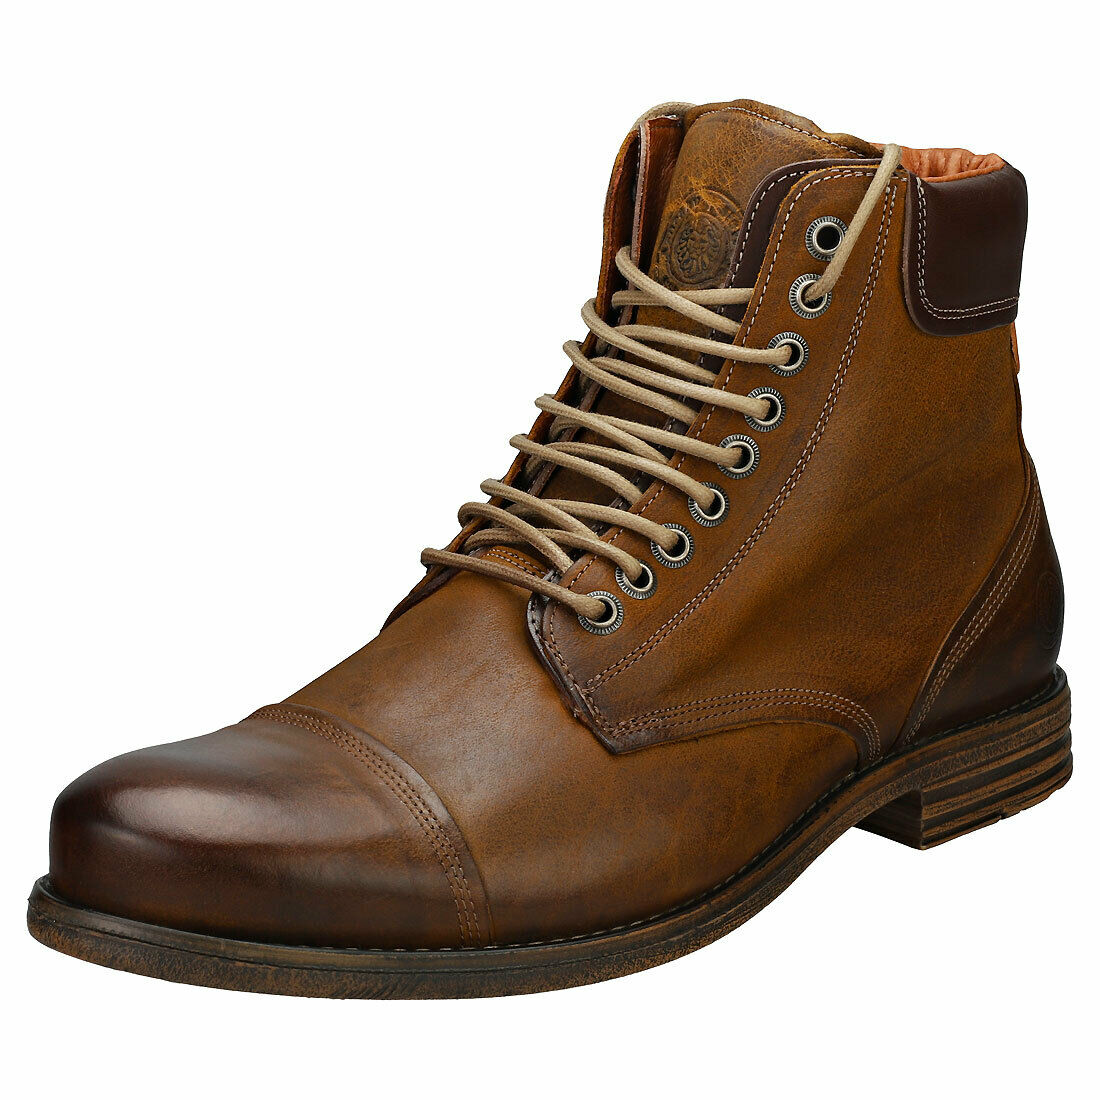 Sneaky Steve Doverlake Mens Cognac Leather Casual Stiefel